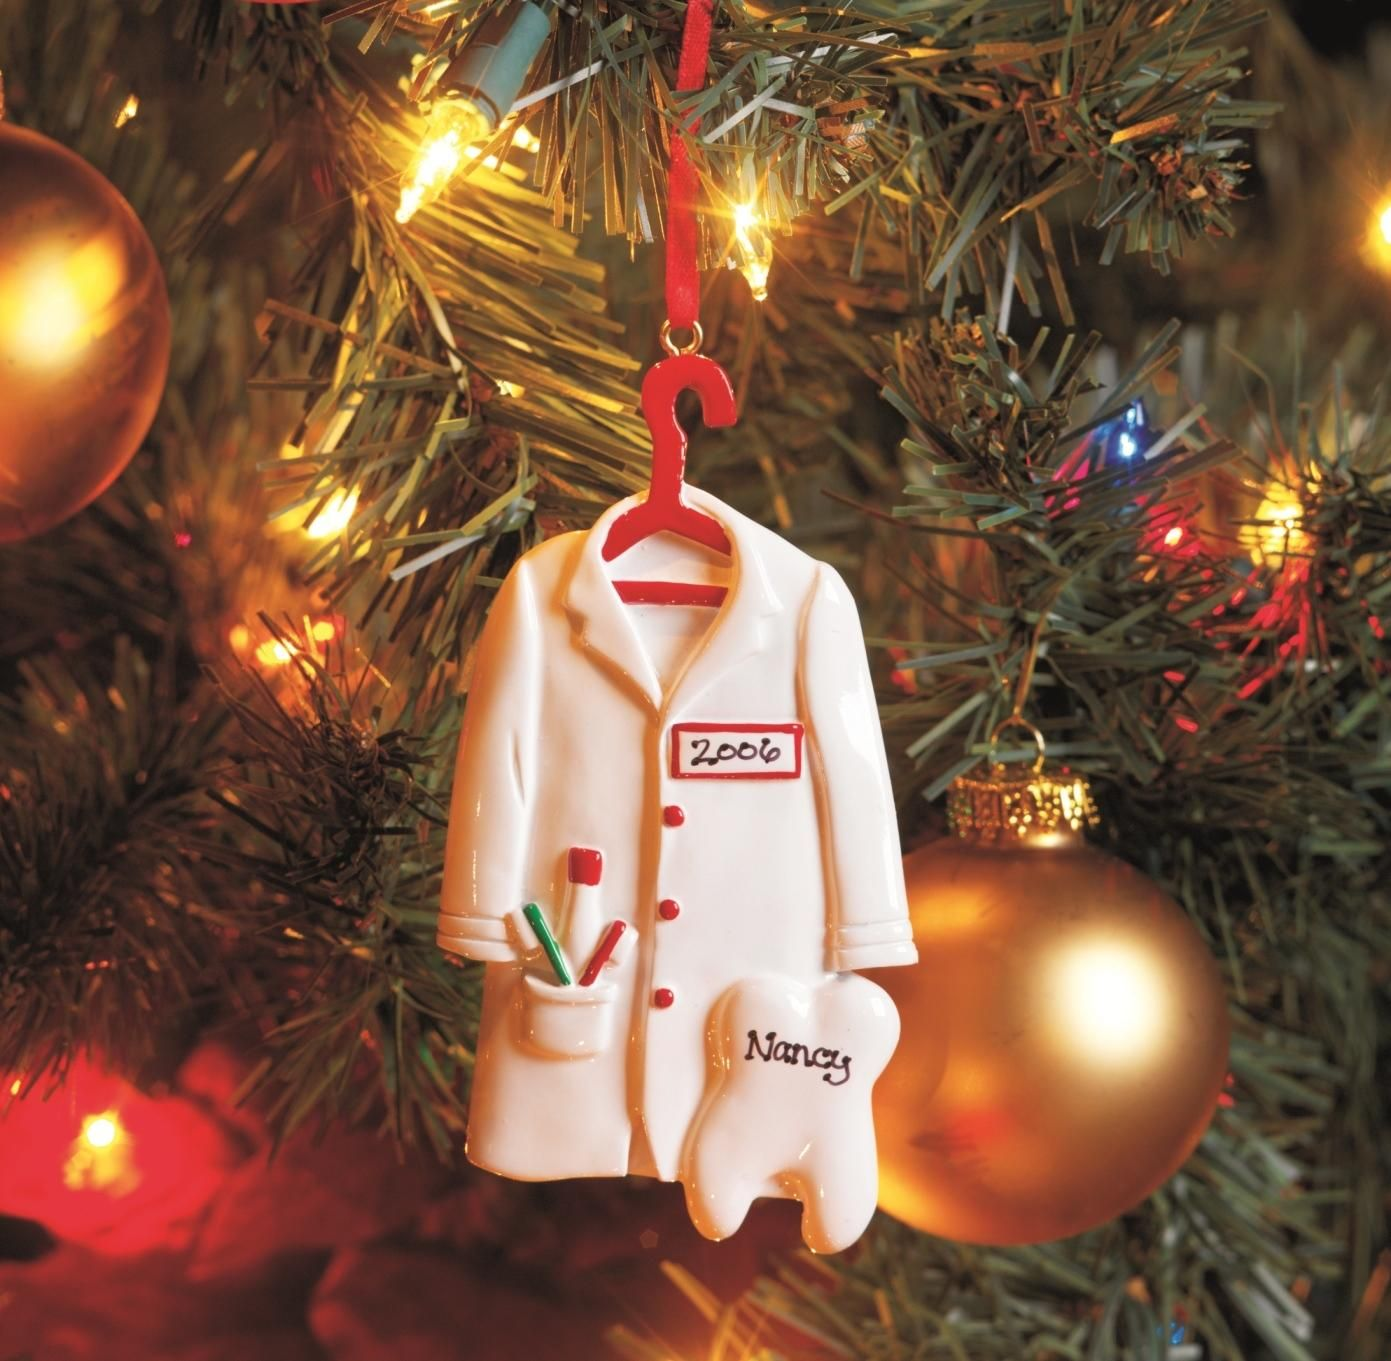 Dentist White Coat Ornament, Personalized Dress up the holidays ...